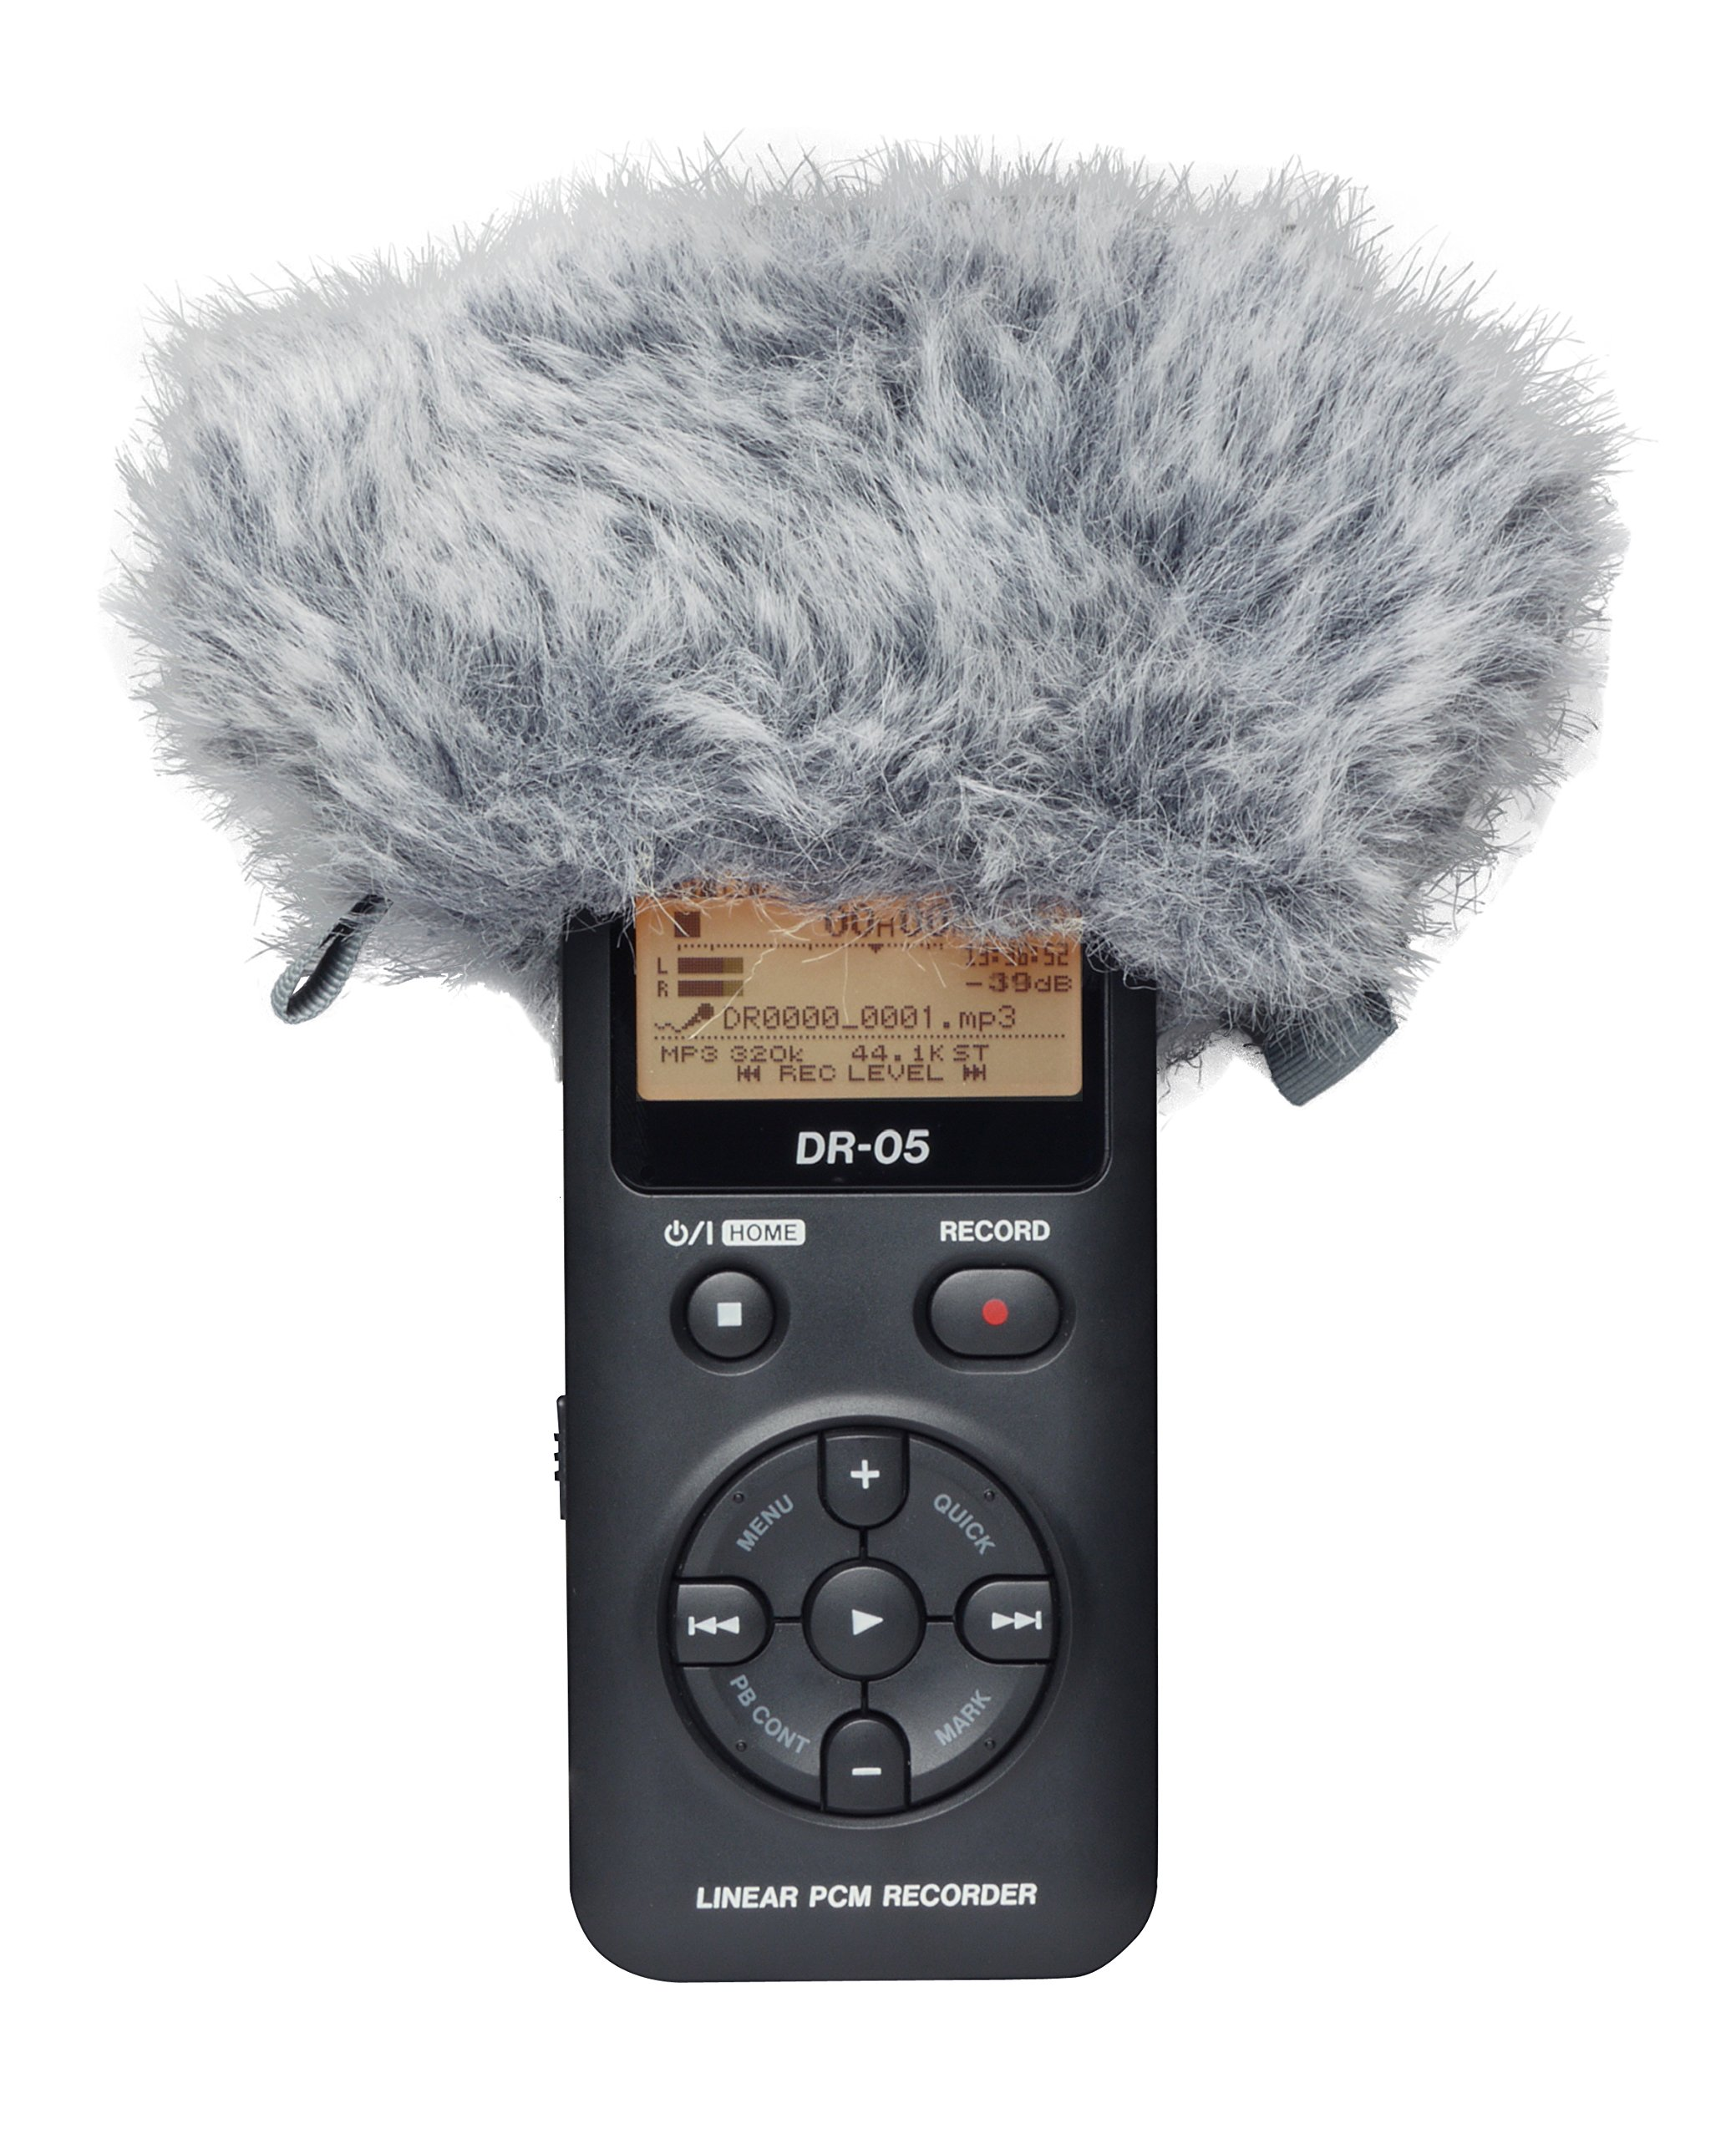 Tascam WS-11 -Windscreen for DR Series Handheld Recorders by Tascam